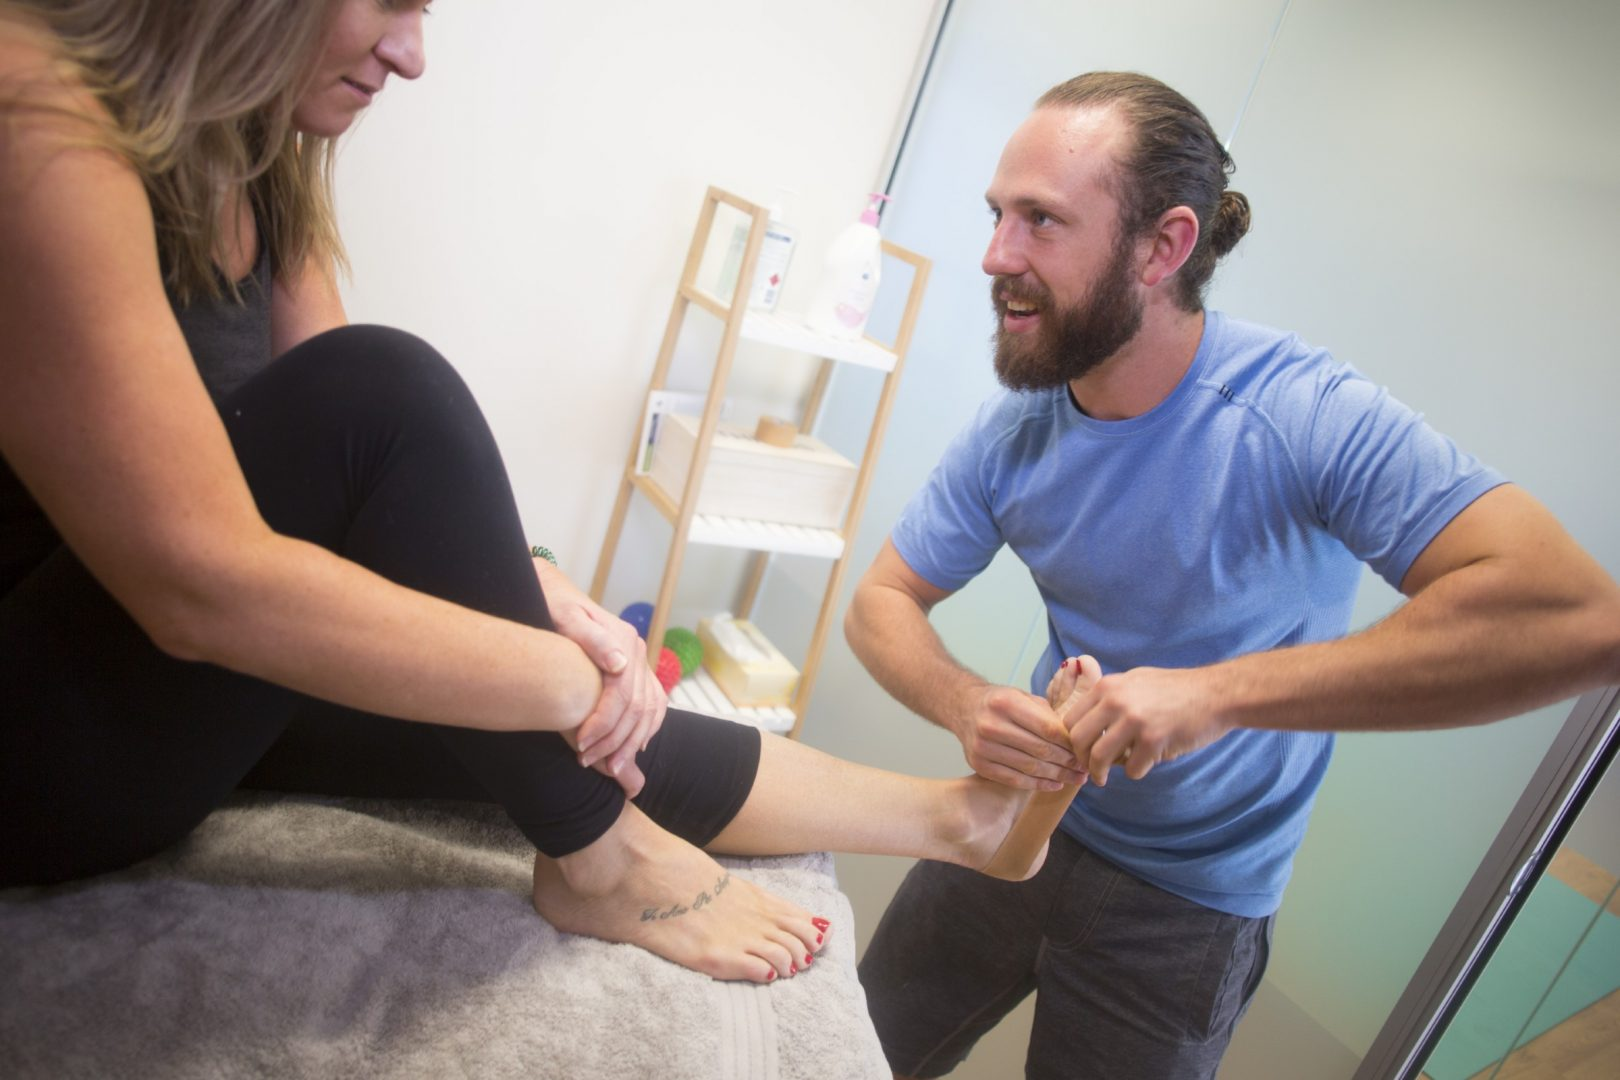 How many physical therapy sessions are necessary to recover from an injury?